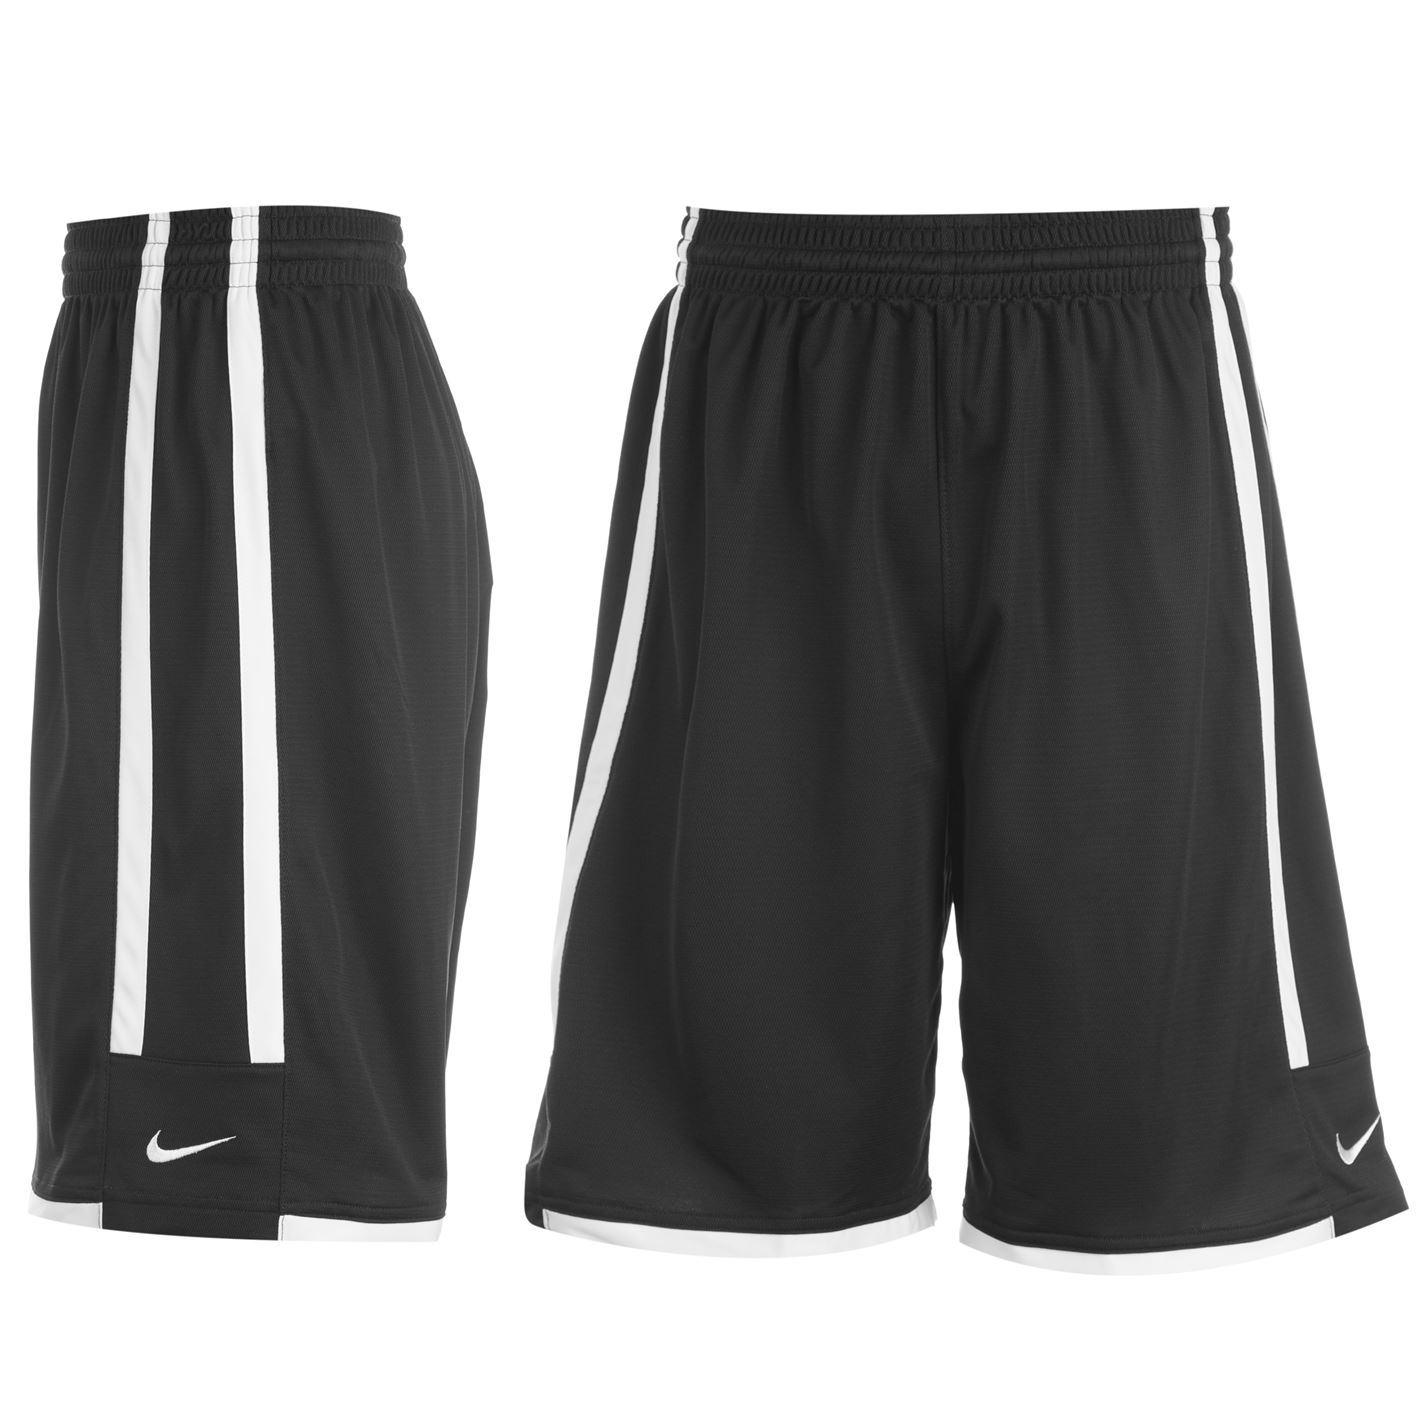 Basketball Shorts Cheap